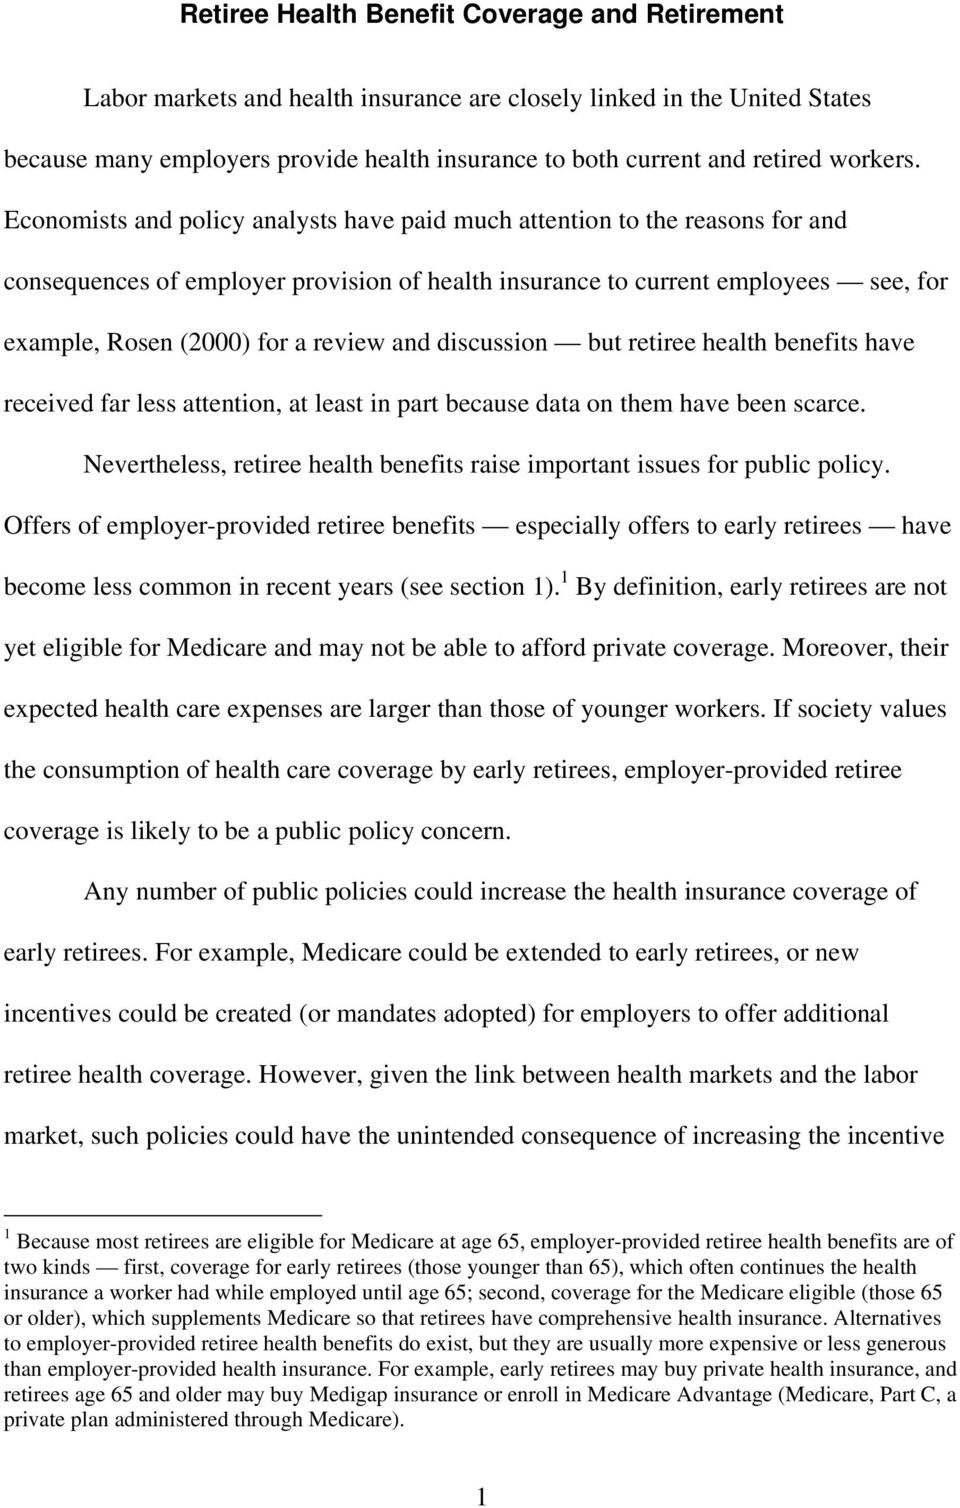 Economists and policy analysts have paid much attention to the reasons for and consequences of employer provision of health insurance to current employees see, for example, Rosen (2000) for a review